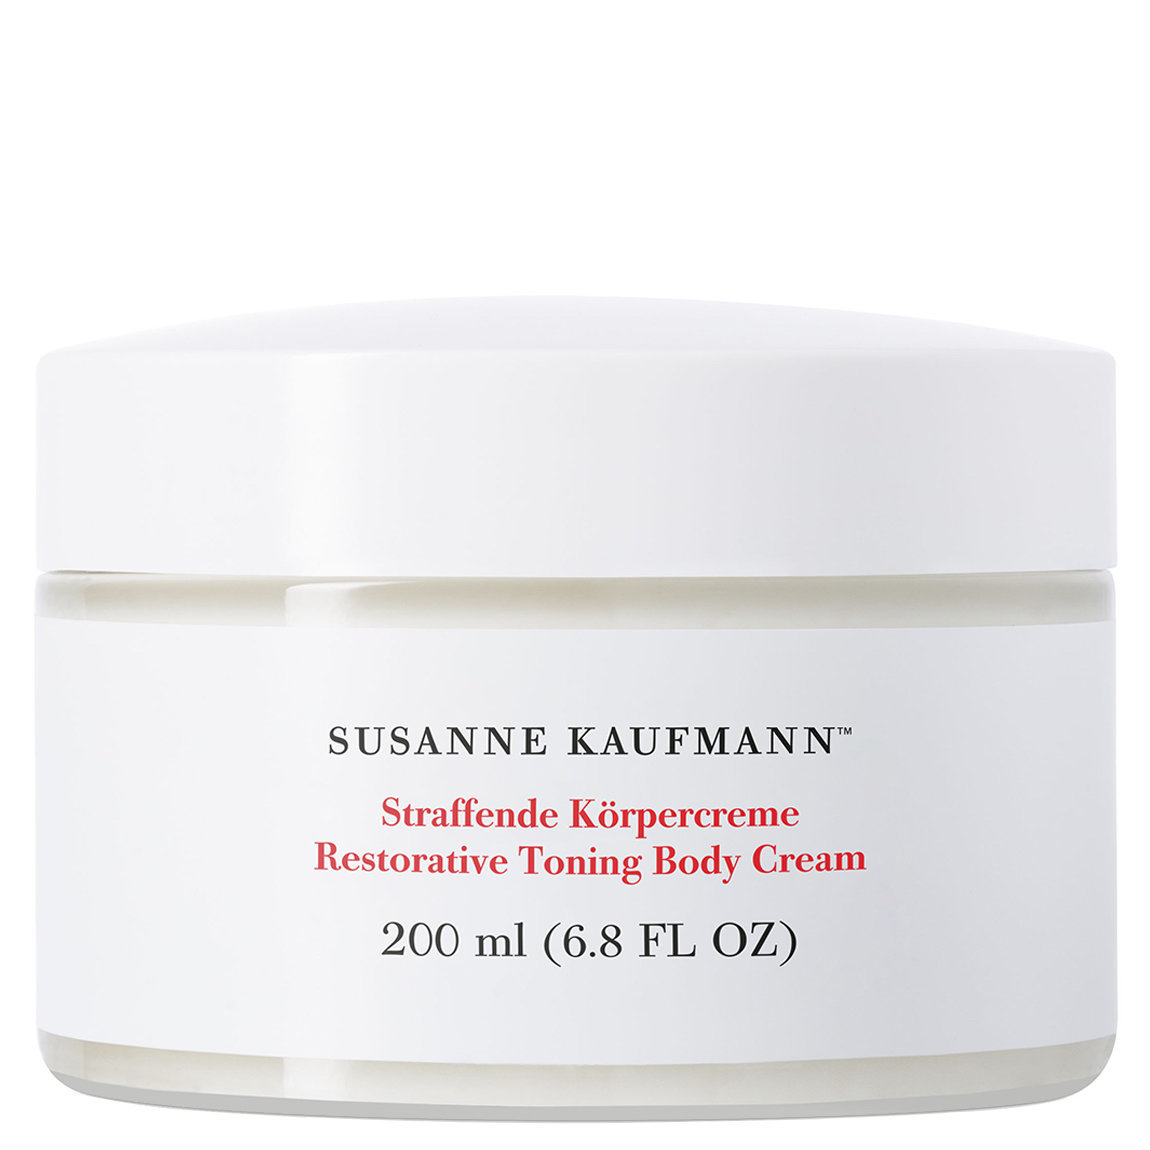 Susanne Kaufmann Restorative Toning Body Cream alternative view 1 - product swatch.